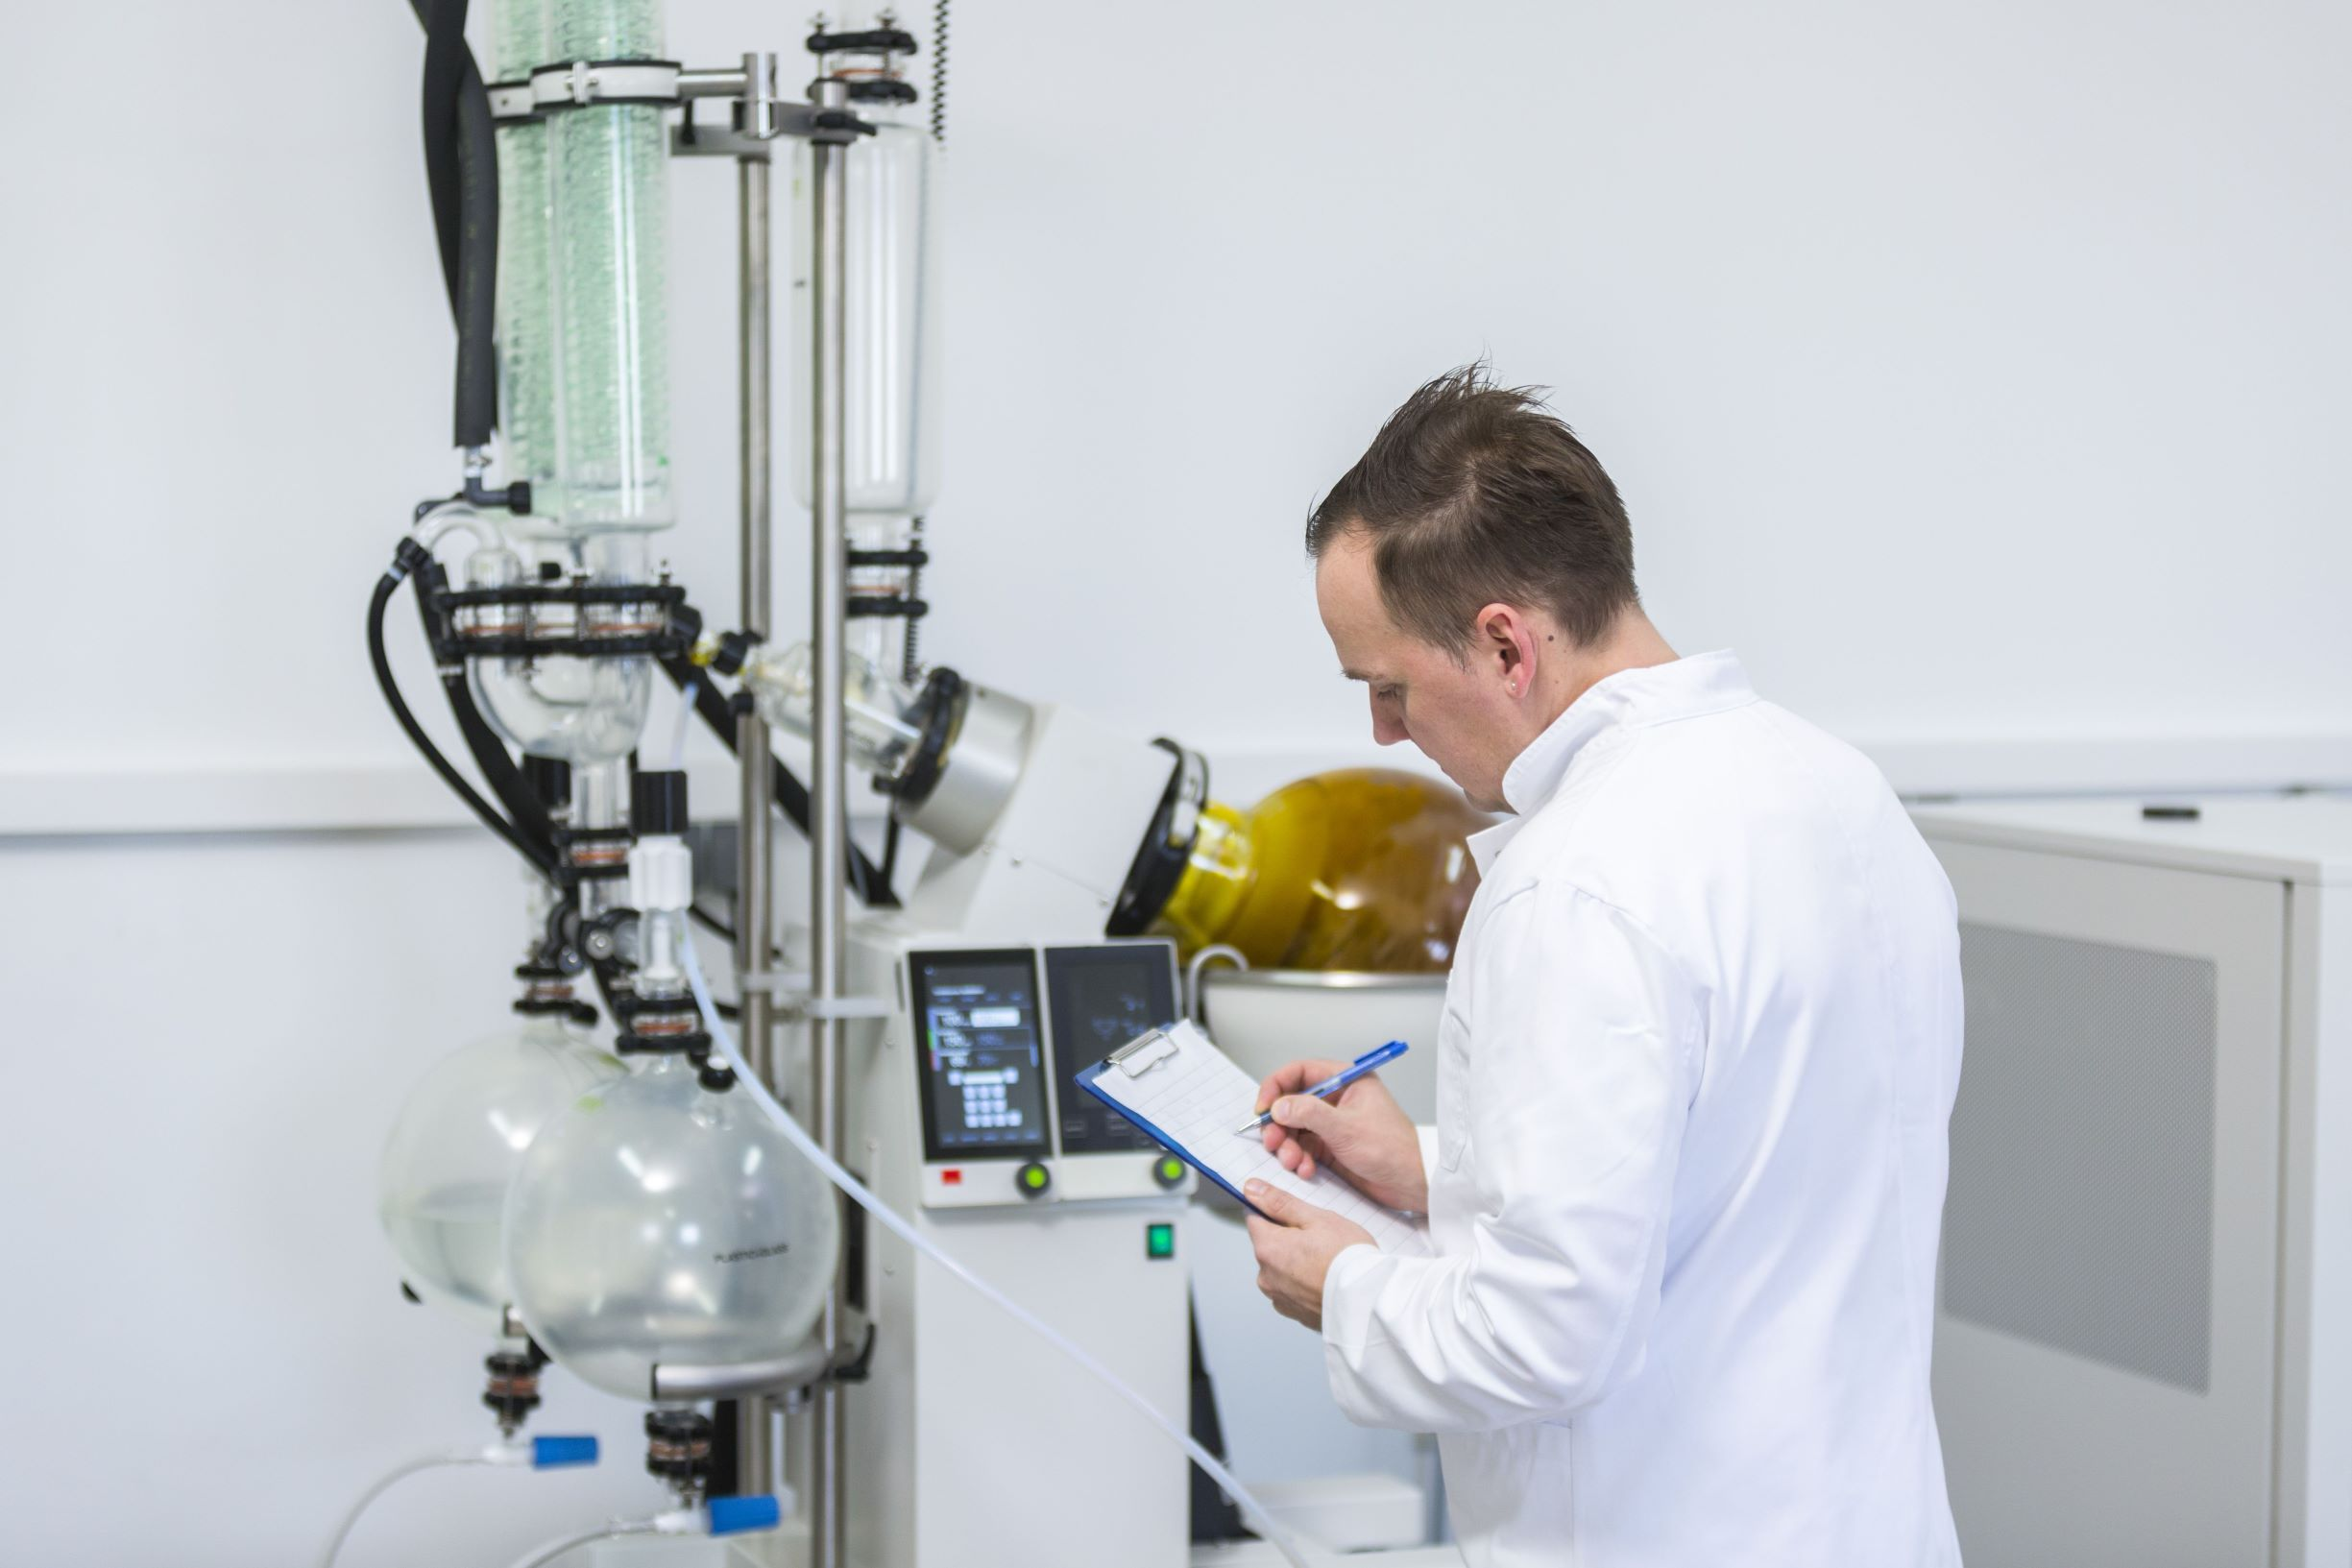 Scientist working with CBD in a lab